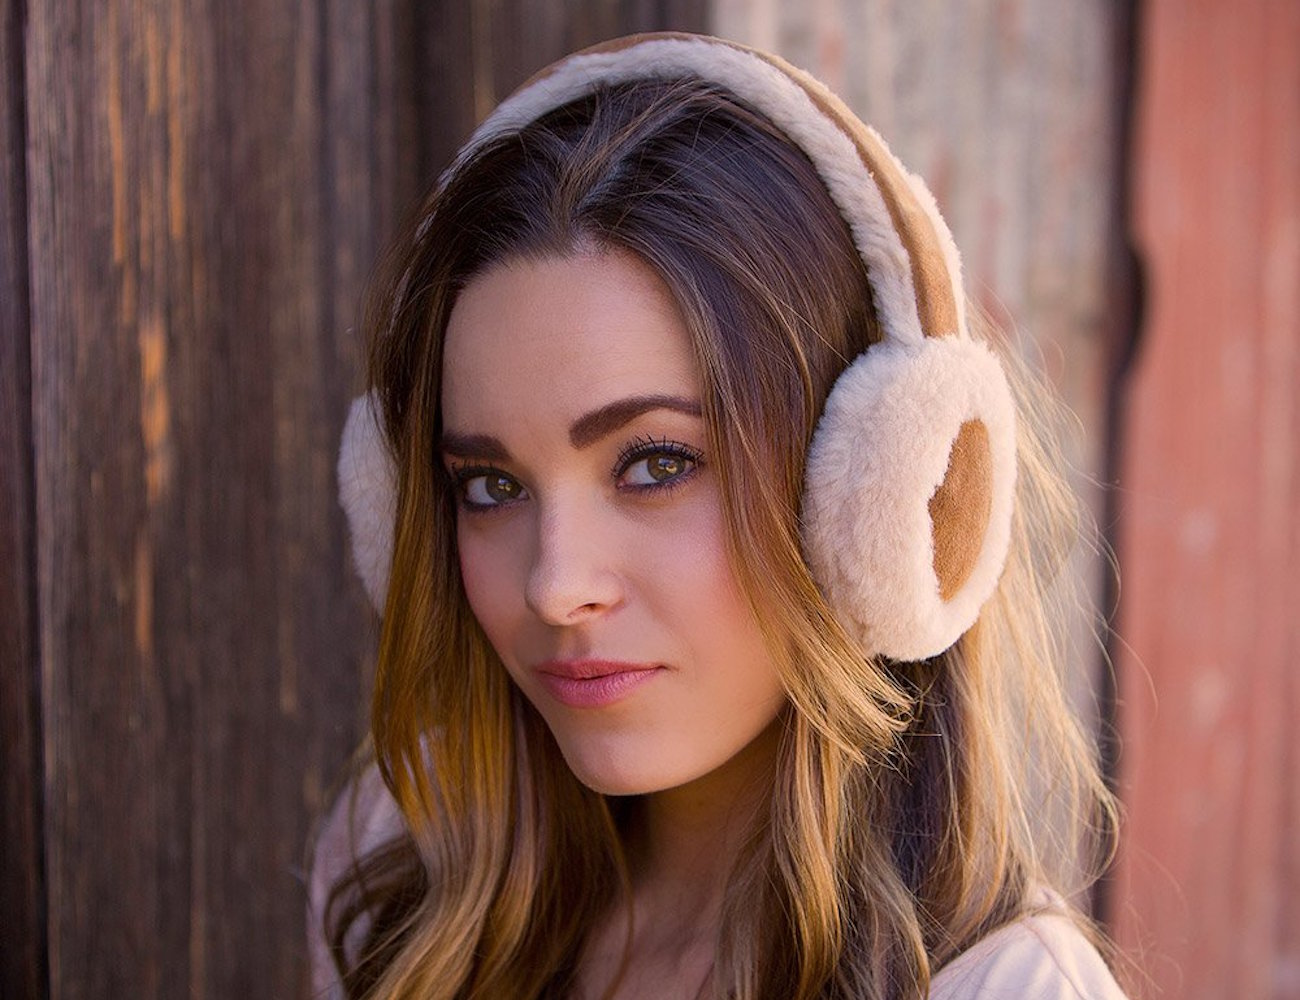 NoiseHush Bluetooth Earmuff Headphones